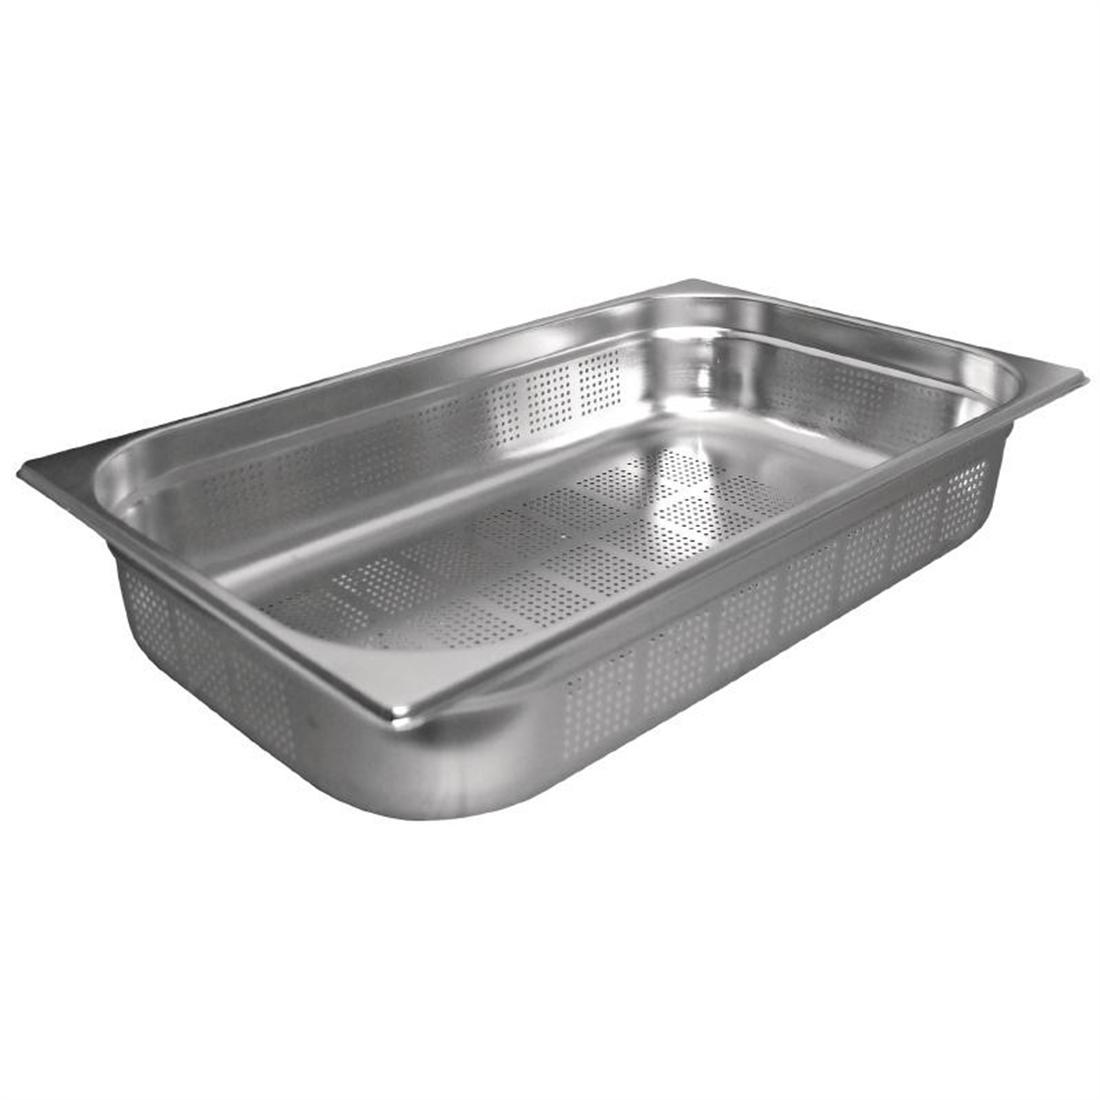 Vogue Stainless Steel Perforated 1/1 Gastronorm Pan 150mm - K842